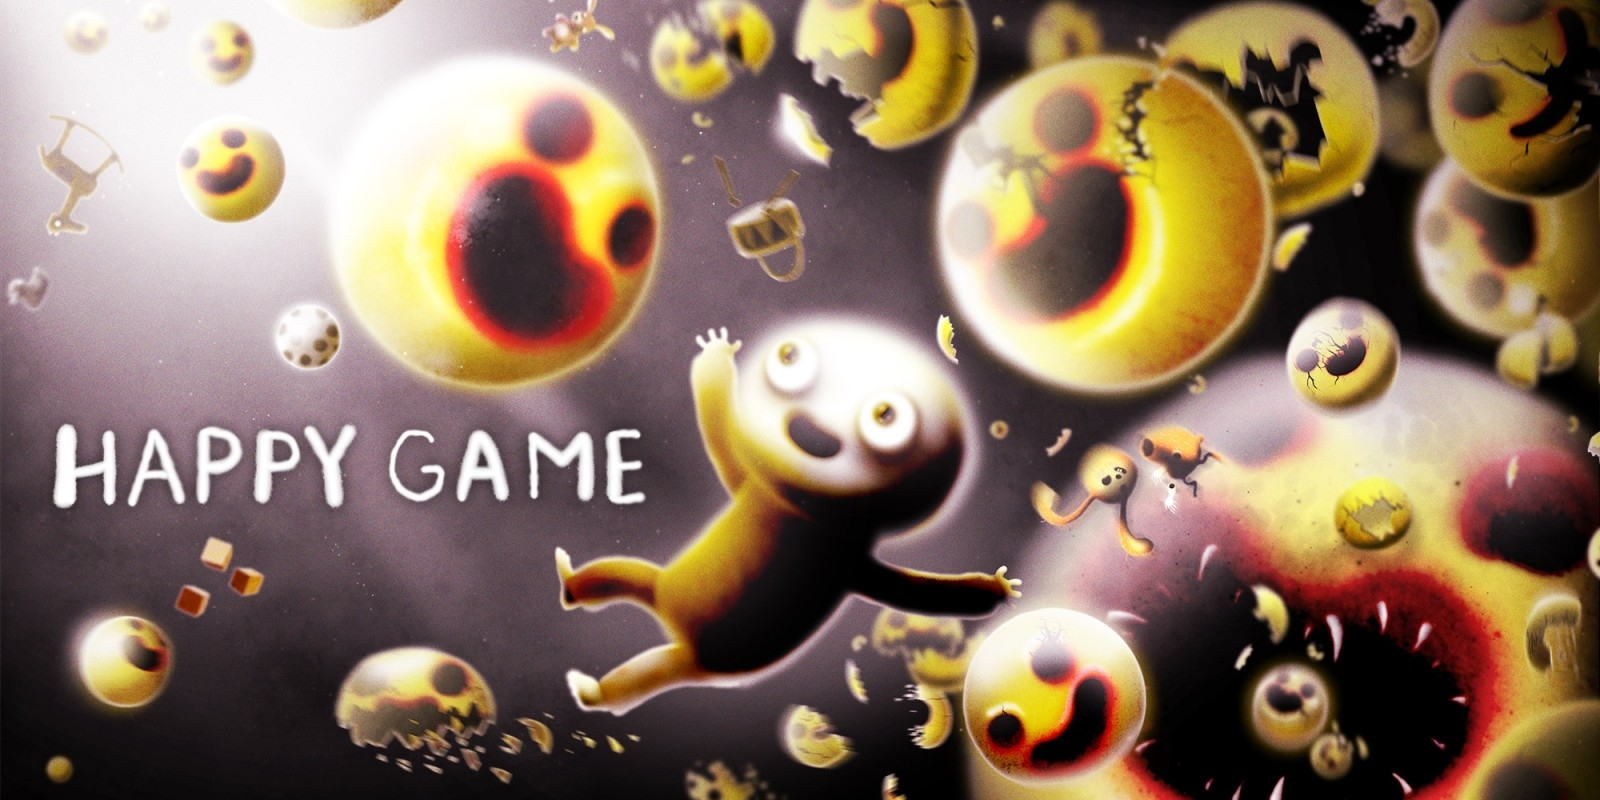 Amanita Design's Happy Game Launches On PC And Nintendo Switch In Spring 2021